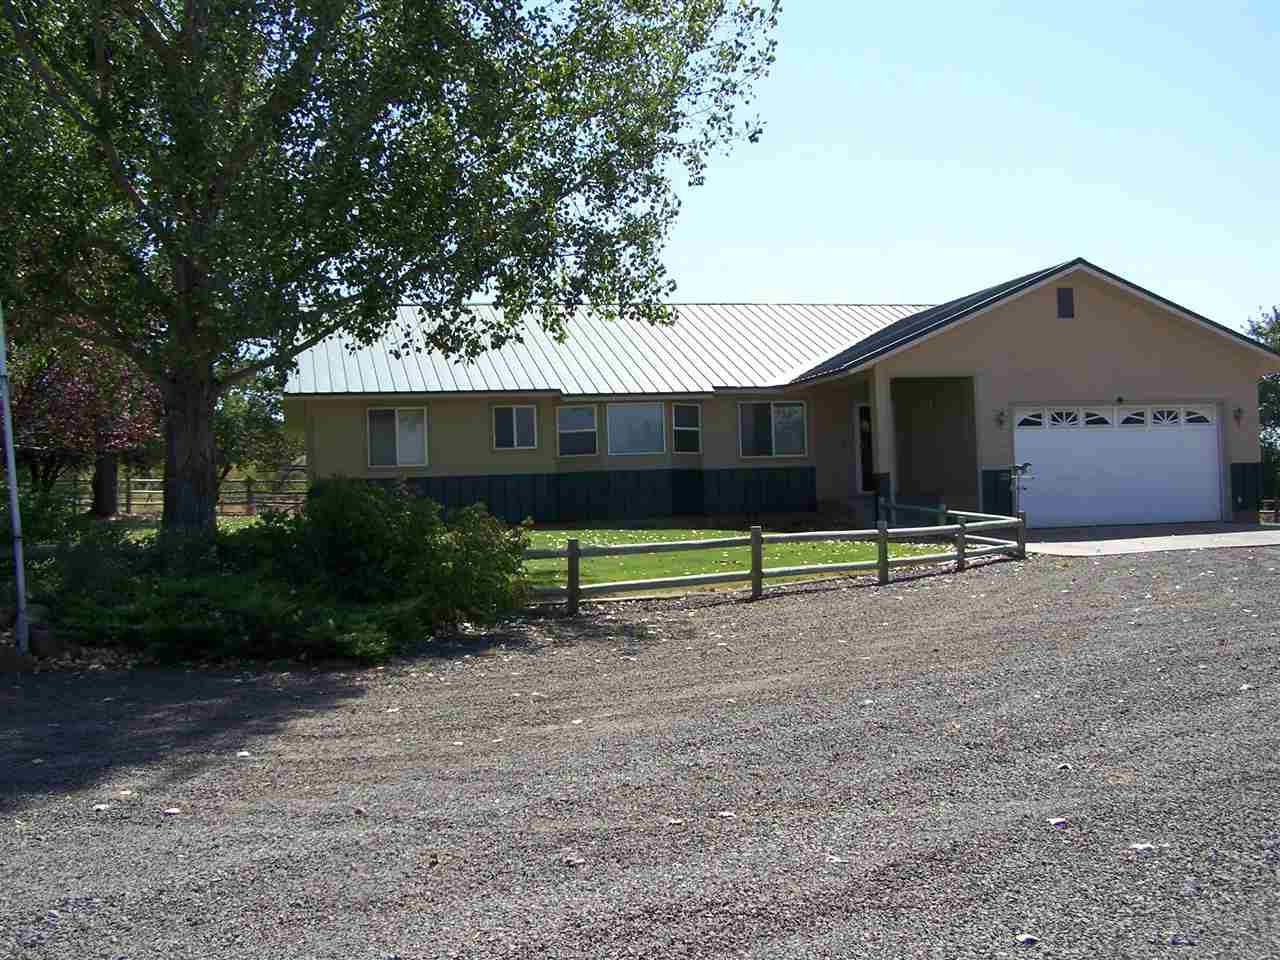 1861 Valley View Rd, Council, ID 83612